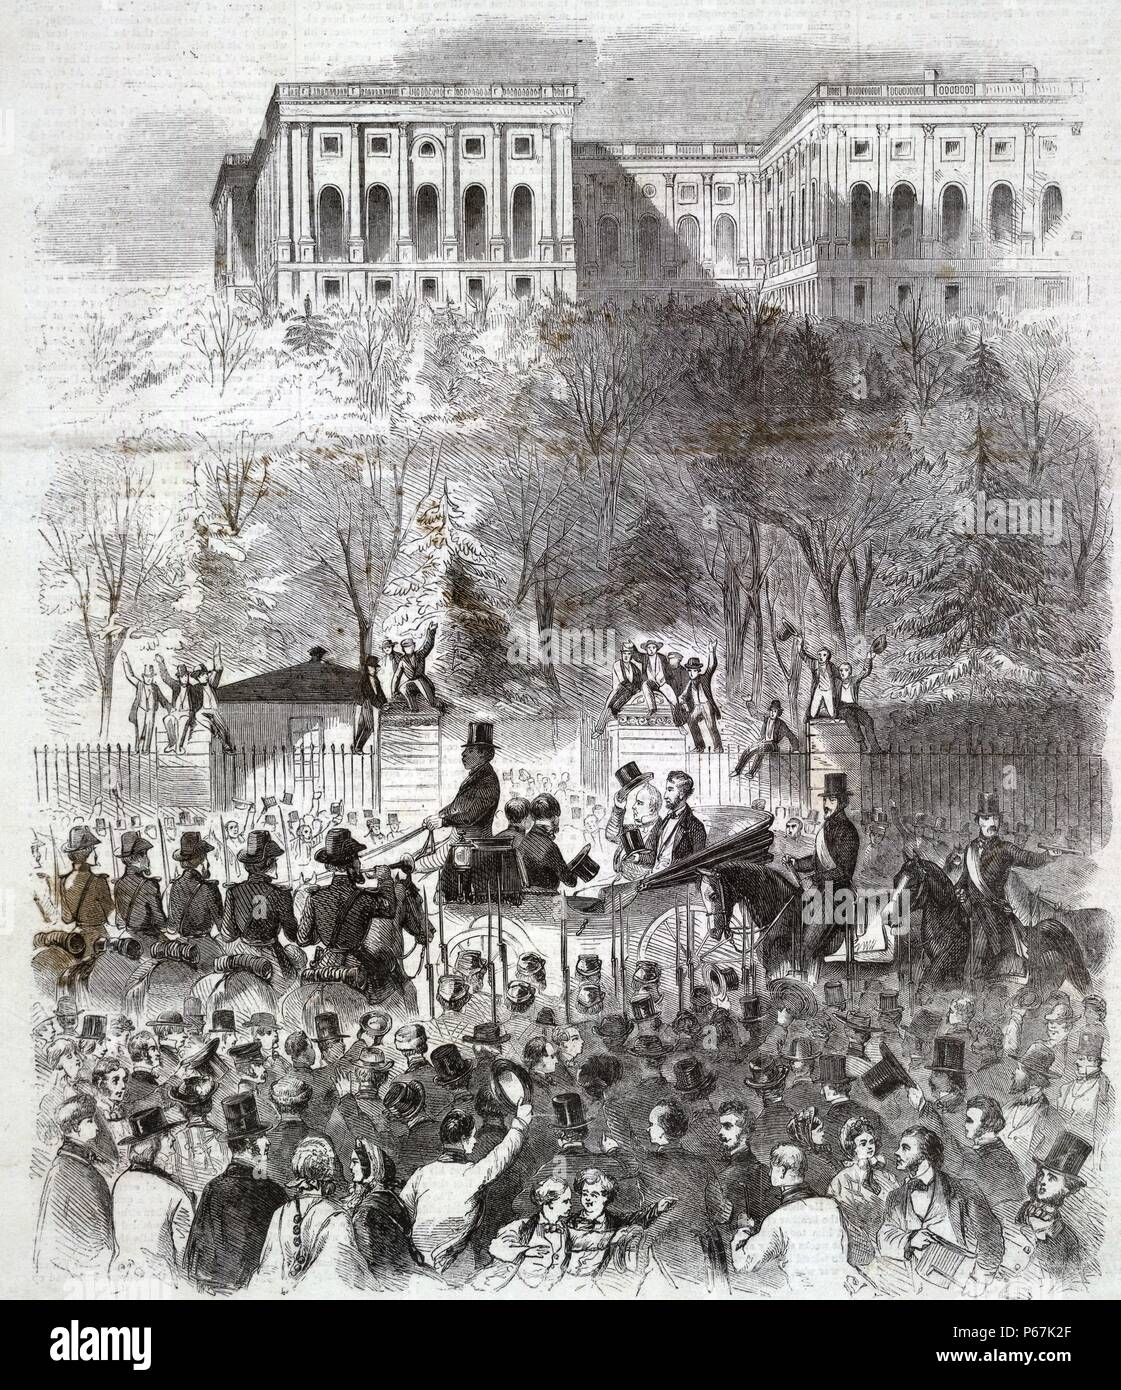 The inaugural procession at Washington passing the gate of the Capitol grounds' President-elect Lincoln and President Buchanan (tipping his top hat) amidst cheering crowd before west gate at base of Capitol grounds, on their way to the Capitol for Lincoln's first inauguration. - Stock Image